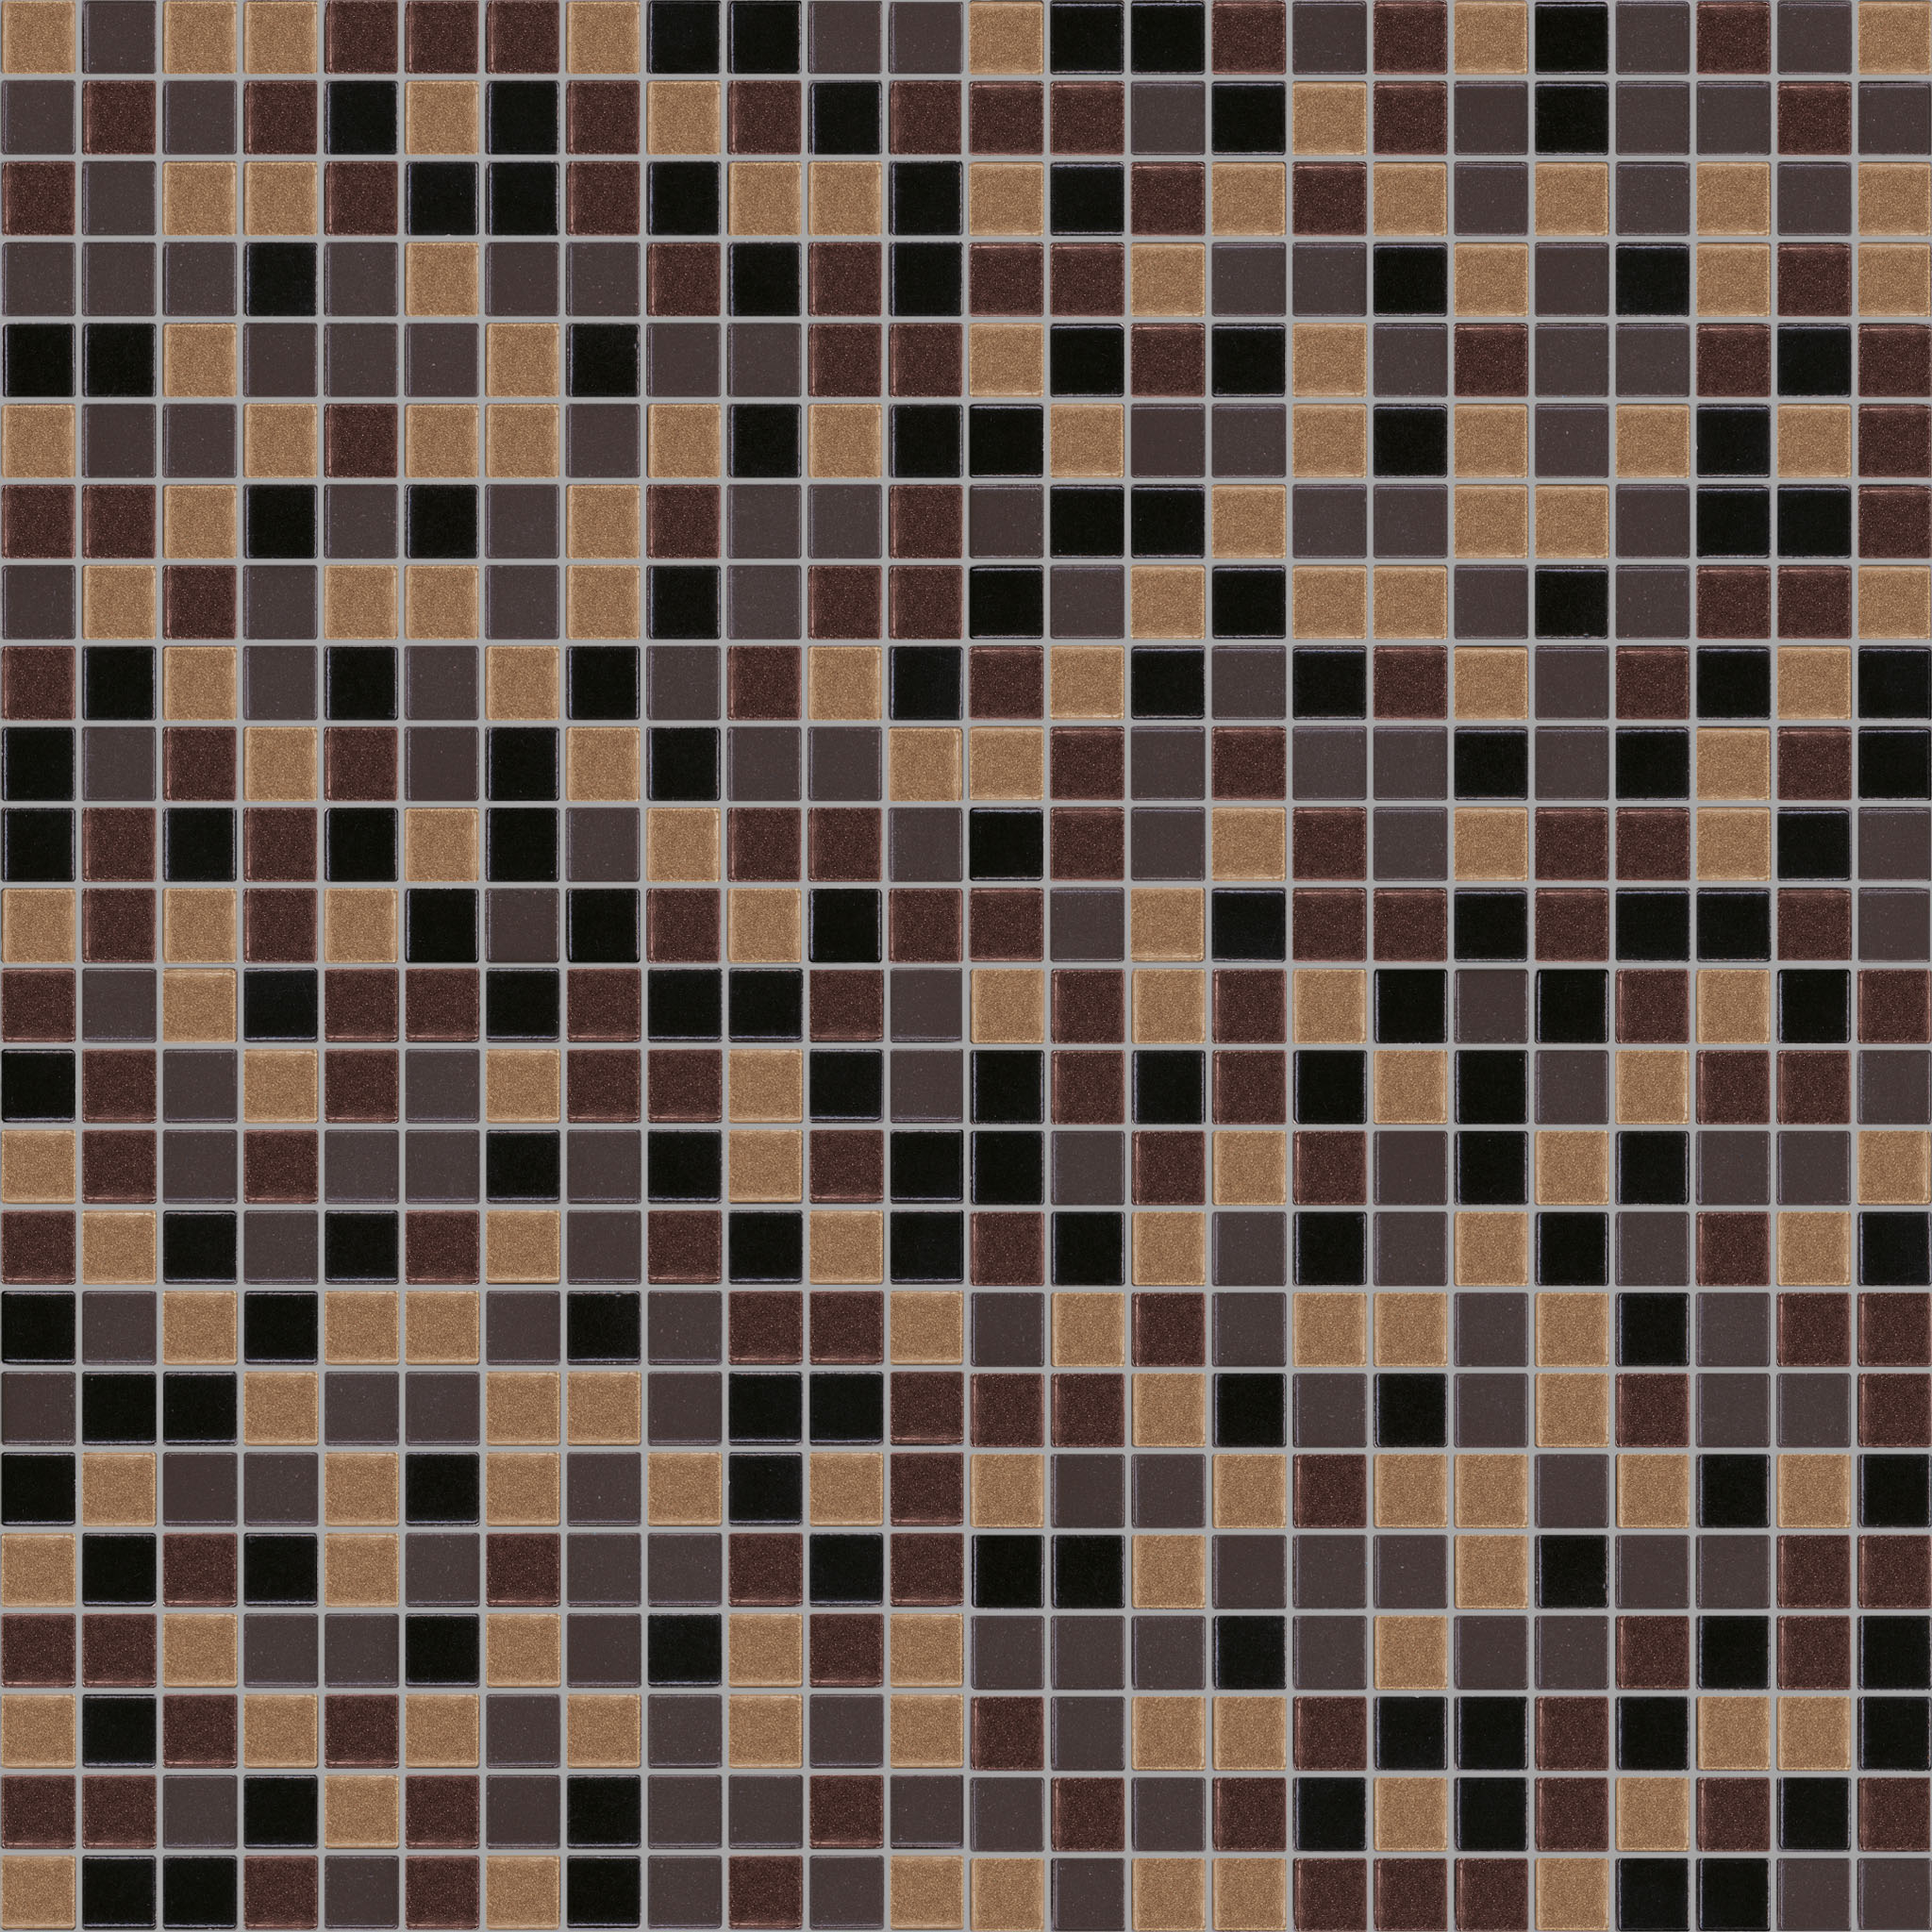 Mosaico in ceramica tribal chic collezione mix by appiani for Mosaico ceramica